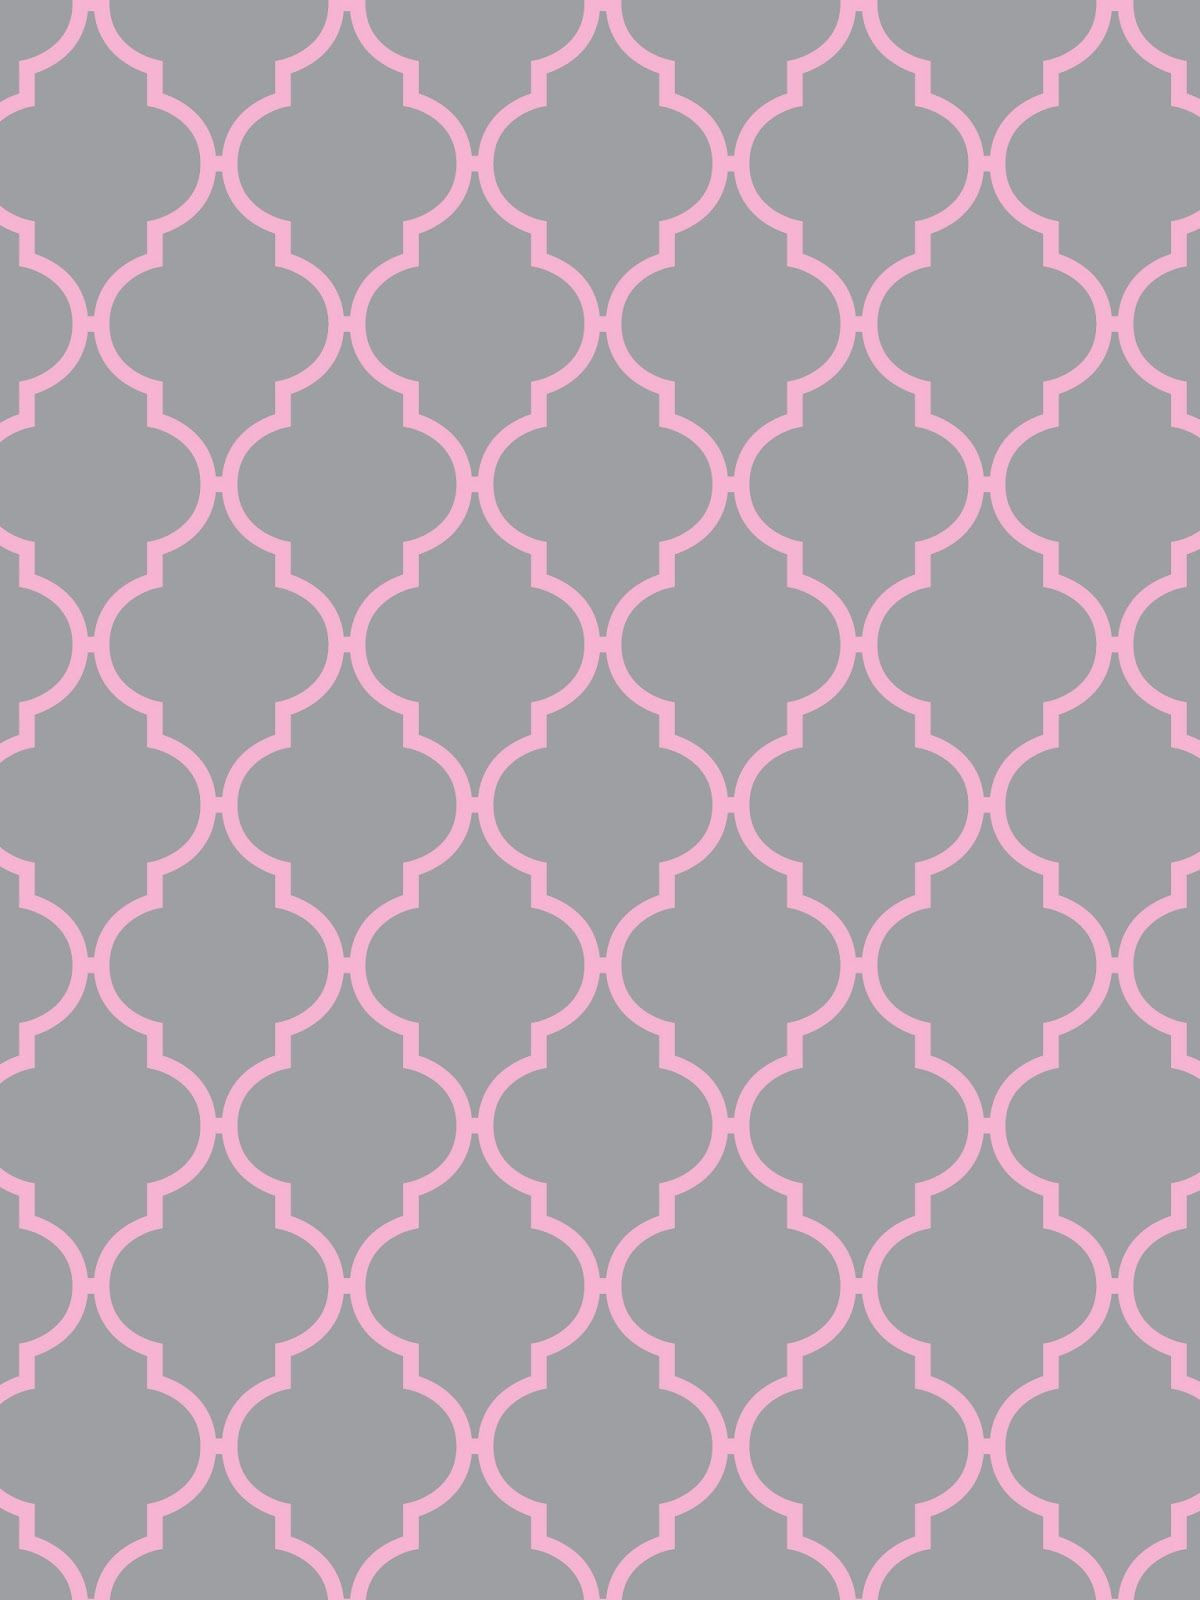 Create Printables Backgrounds Wallpapers QuatrefoilLight Gray With Yellow Aqua Pink White